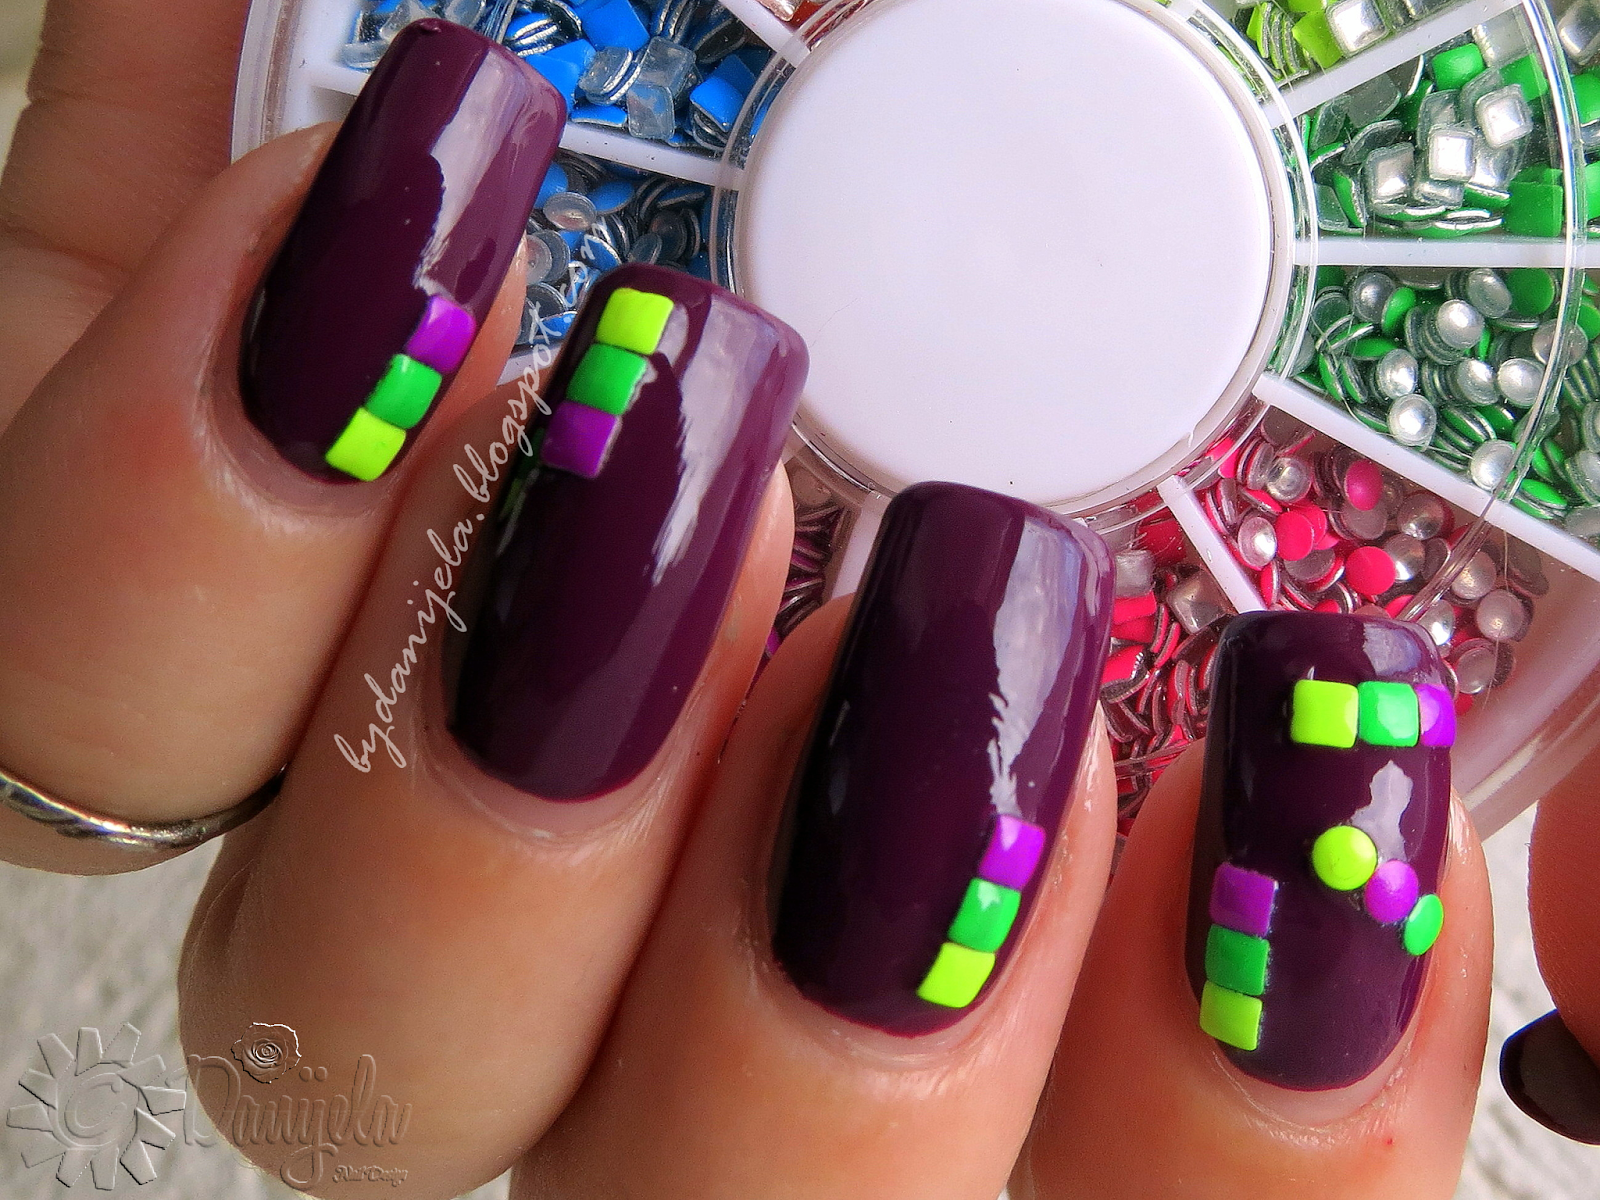 Born Pretty Store - 2mm fluorescent nail art studs+ Video review and ...